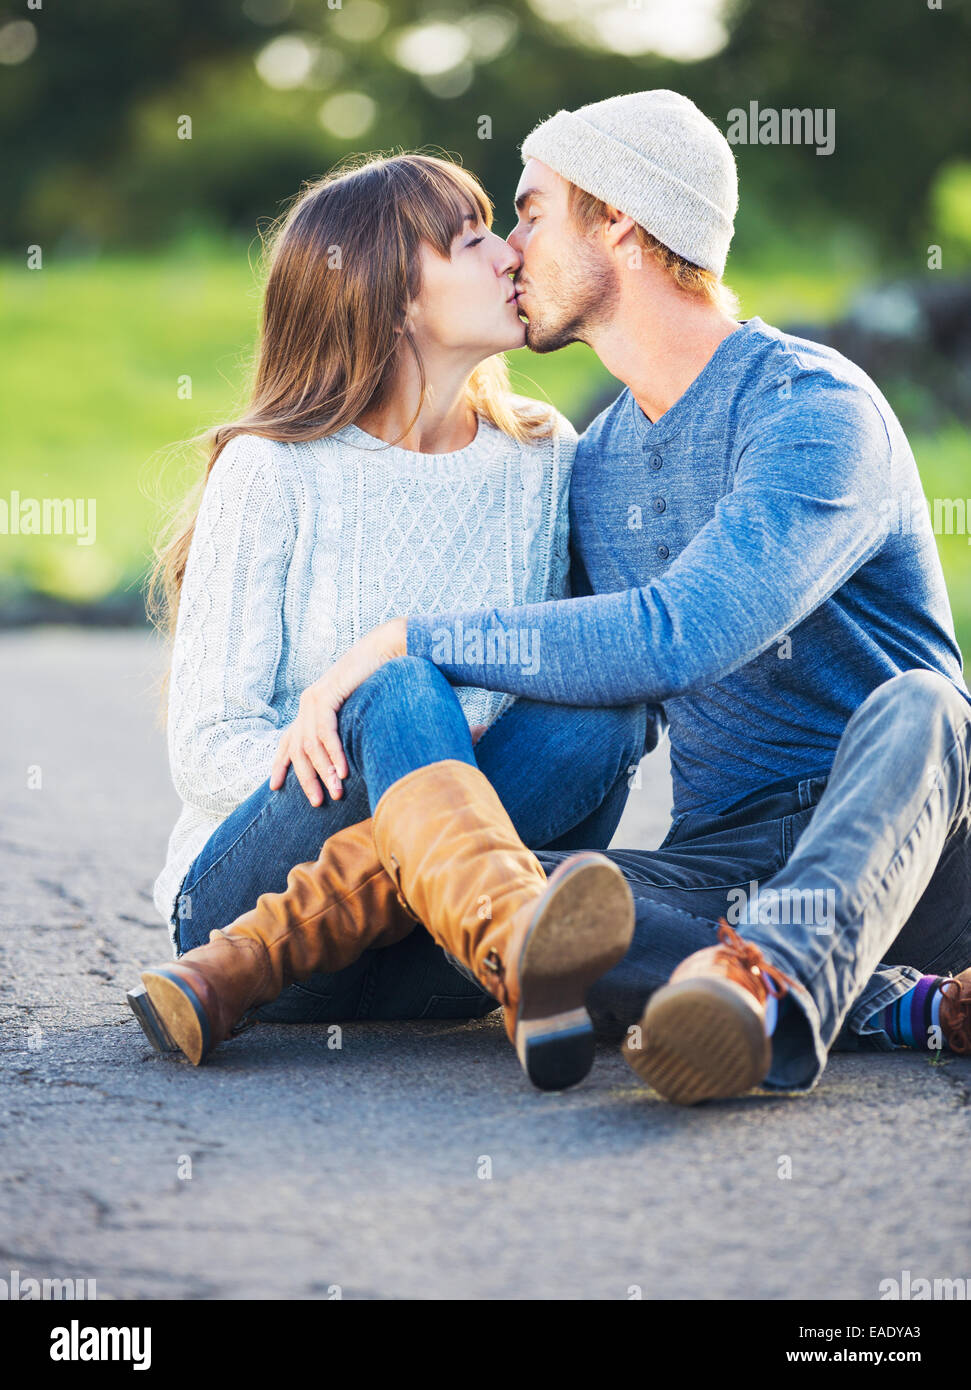 Happy Young Couple Having Fun Outdoors. Romantic Couple Kissing in Love on Country Road. - Stock Image